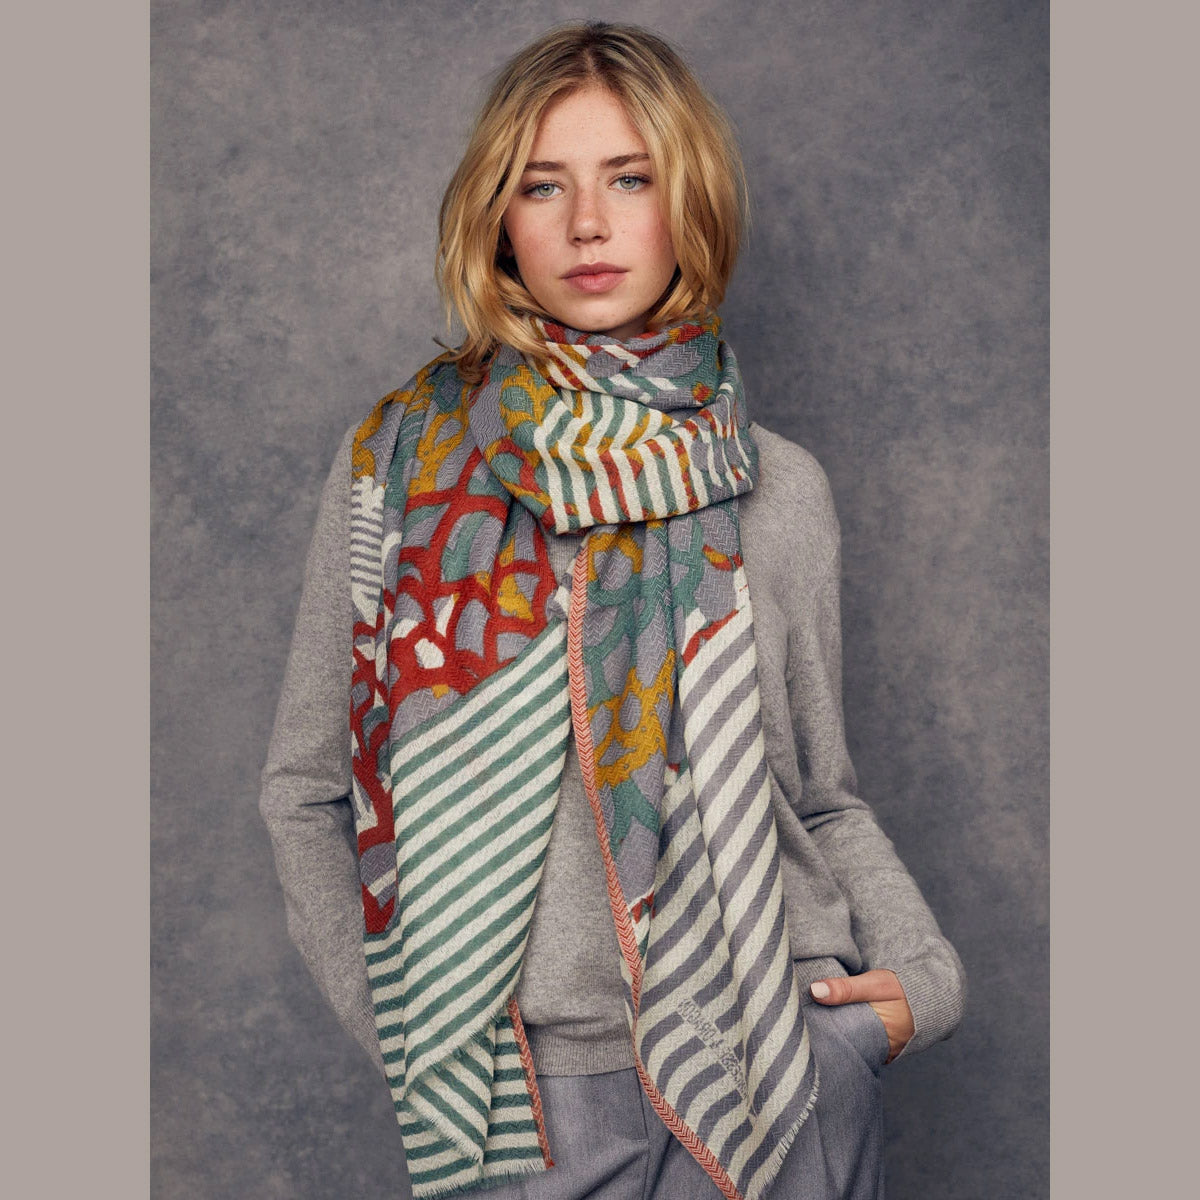 Céleste - 100% Fine Merino Wool Scarf - Olive Green & Saffron Yellow - Sold by Chic & Basta